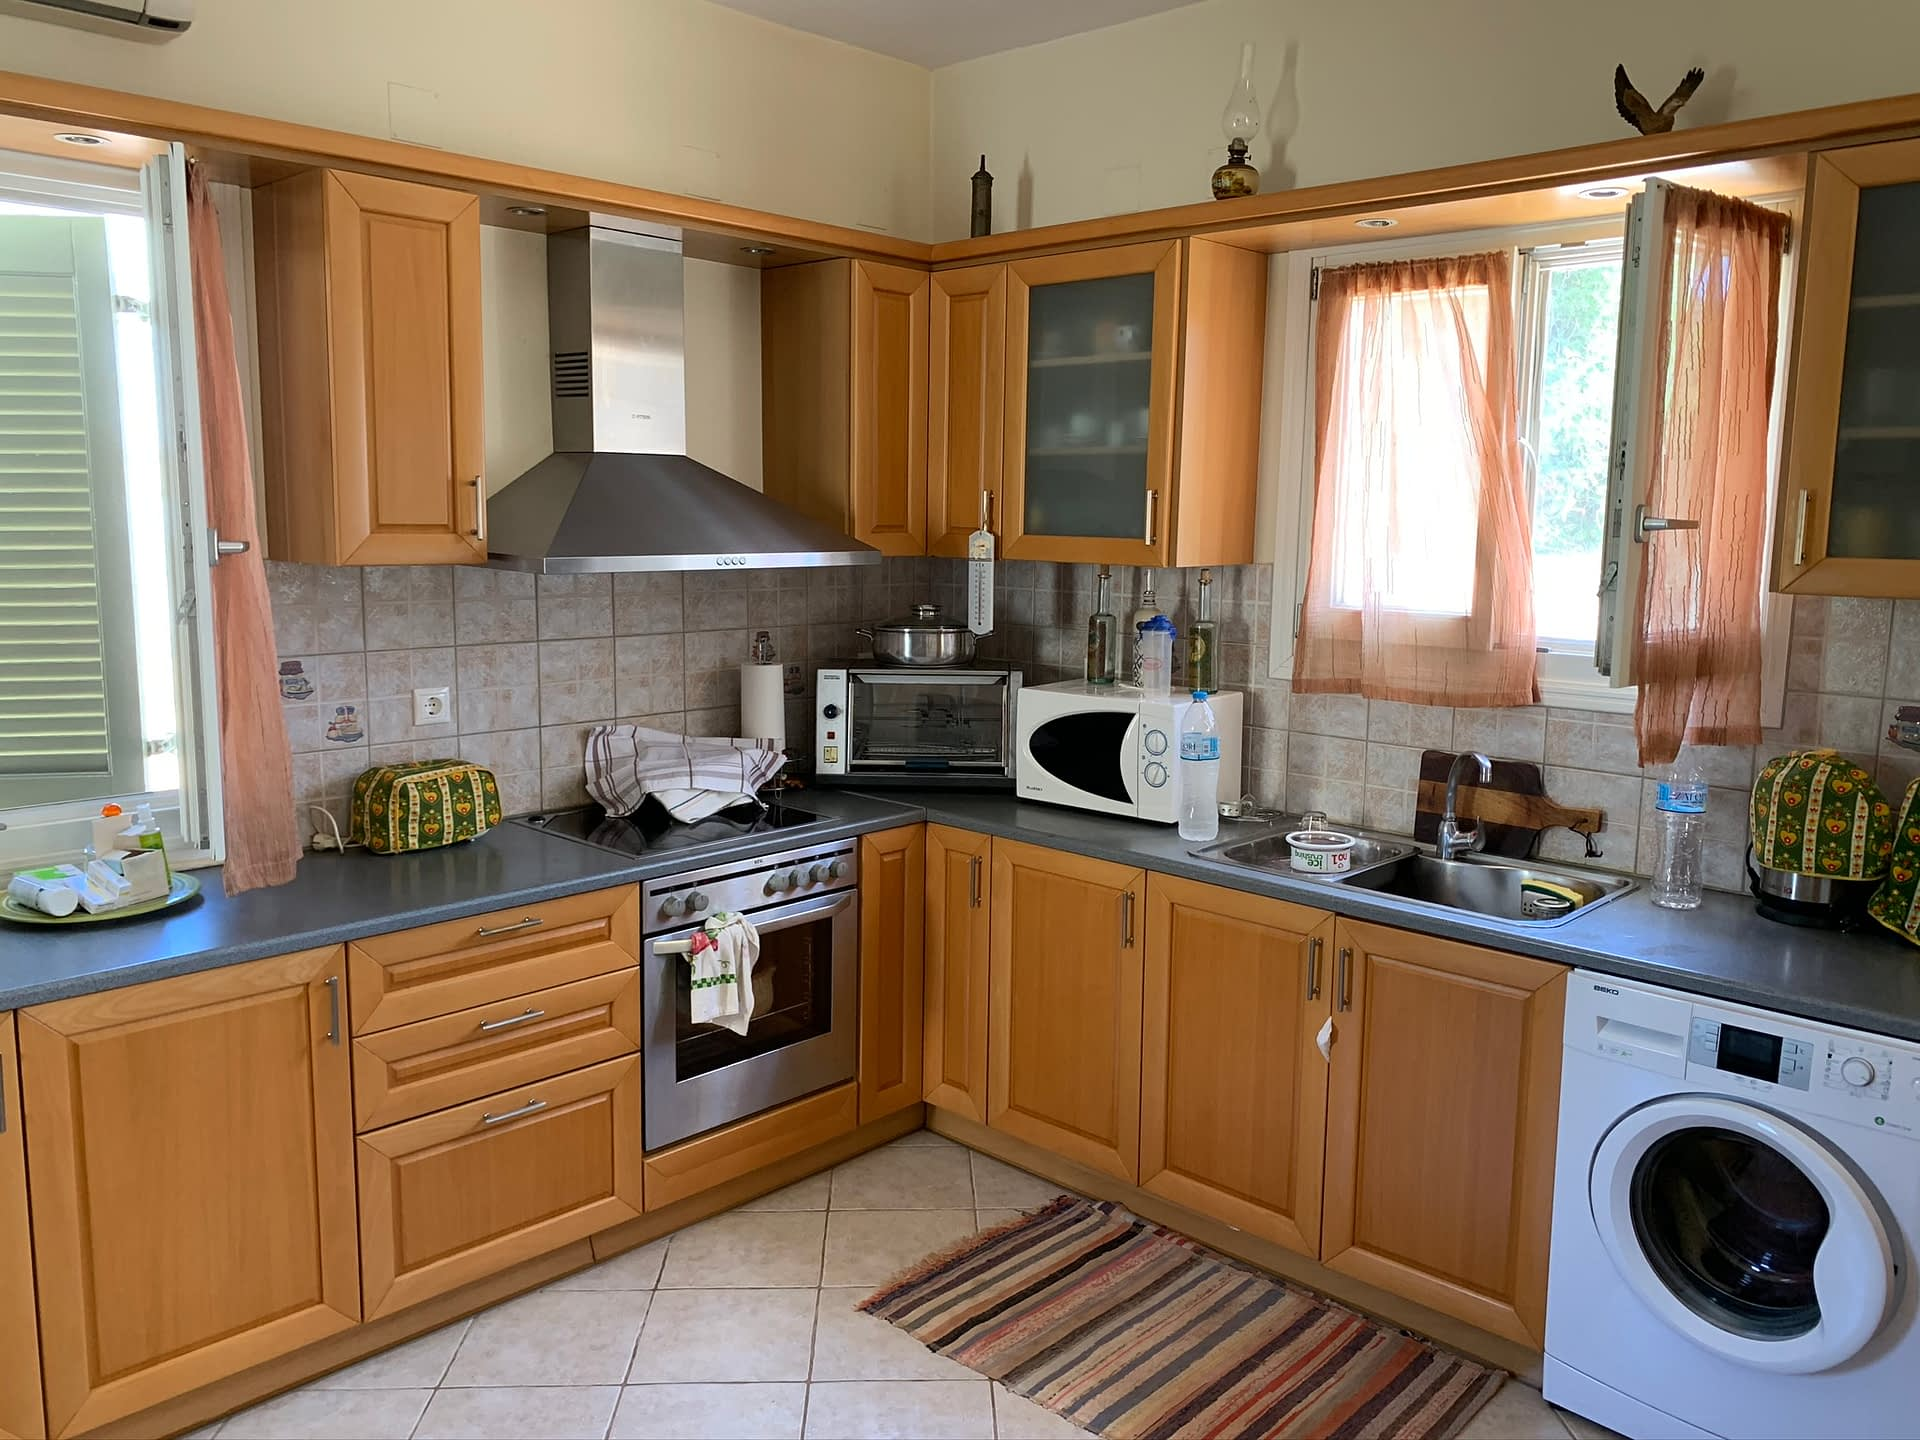 Interior kitchen of house for sale in Ithaca Greece Vathi